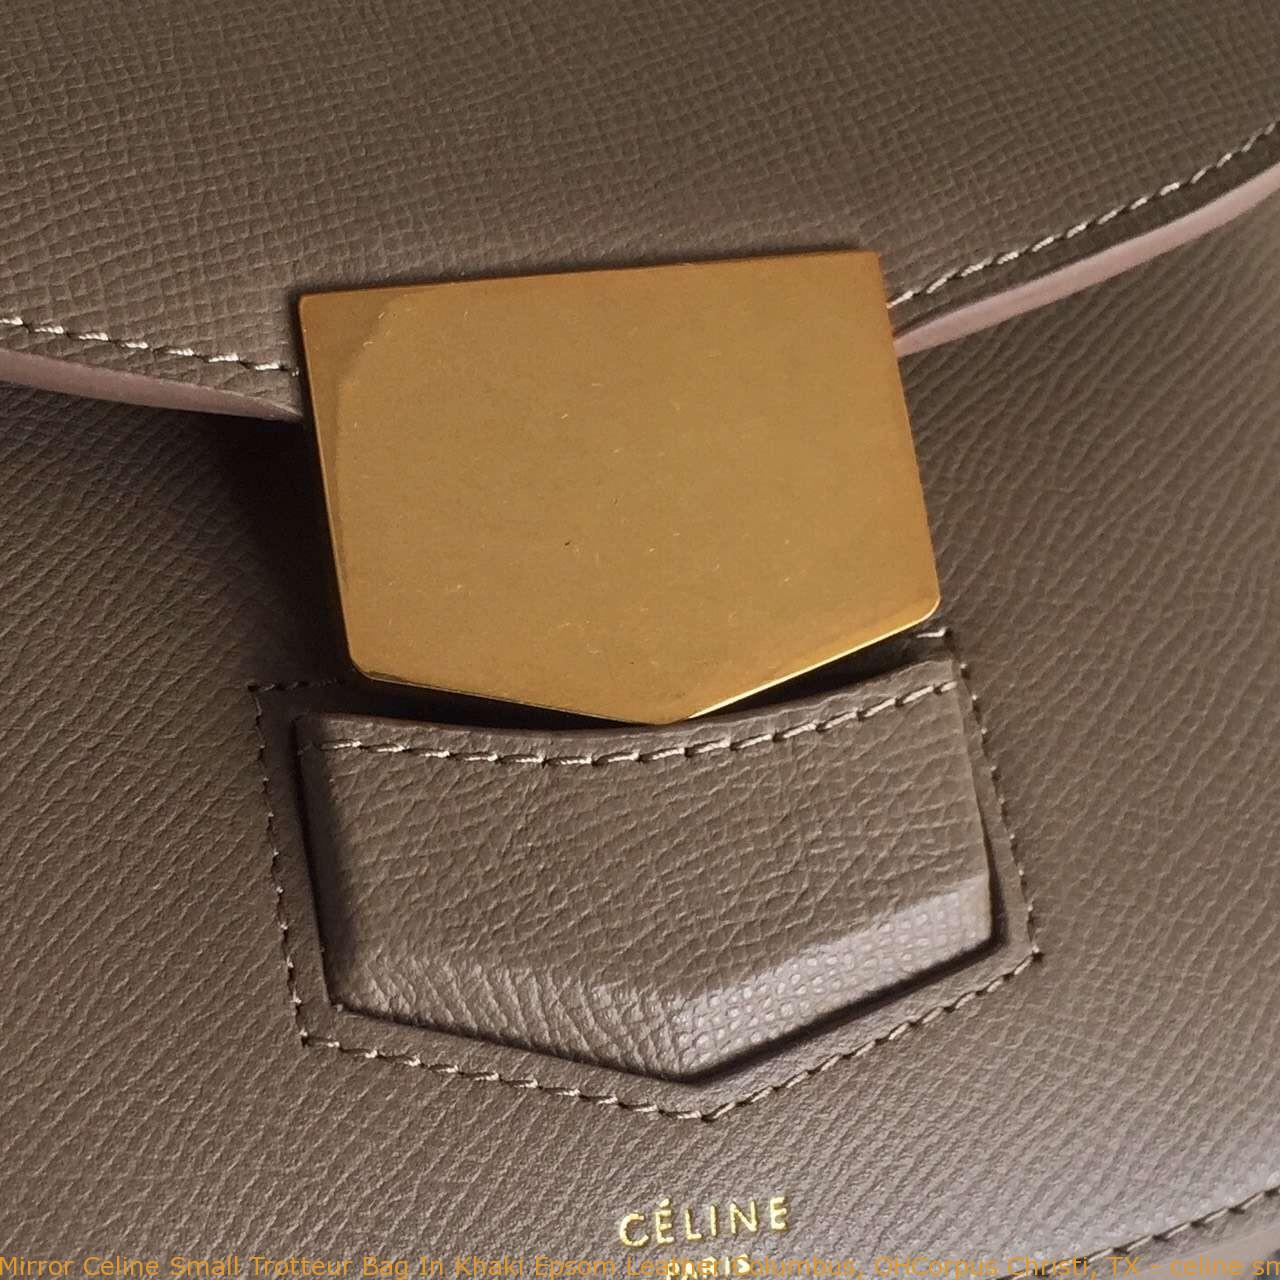 d43c5851a7b ... Mirror Celine Small Trotteur Bag In Khaki Epsom Leather Columbus